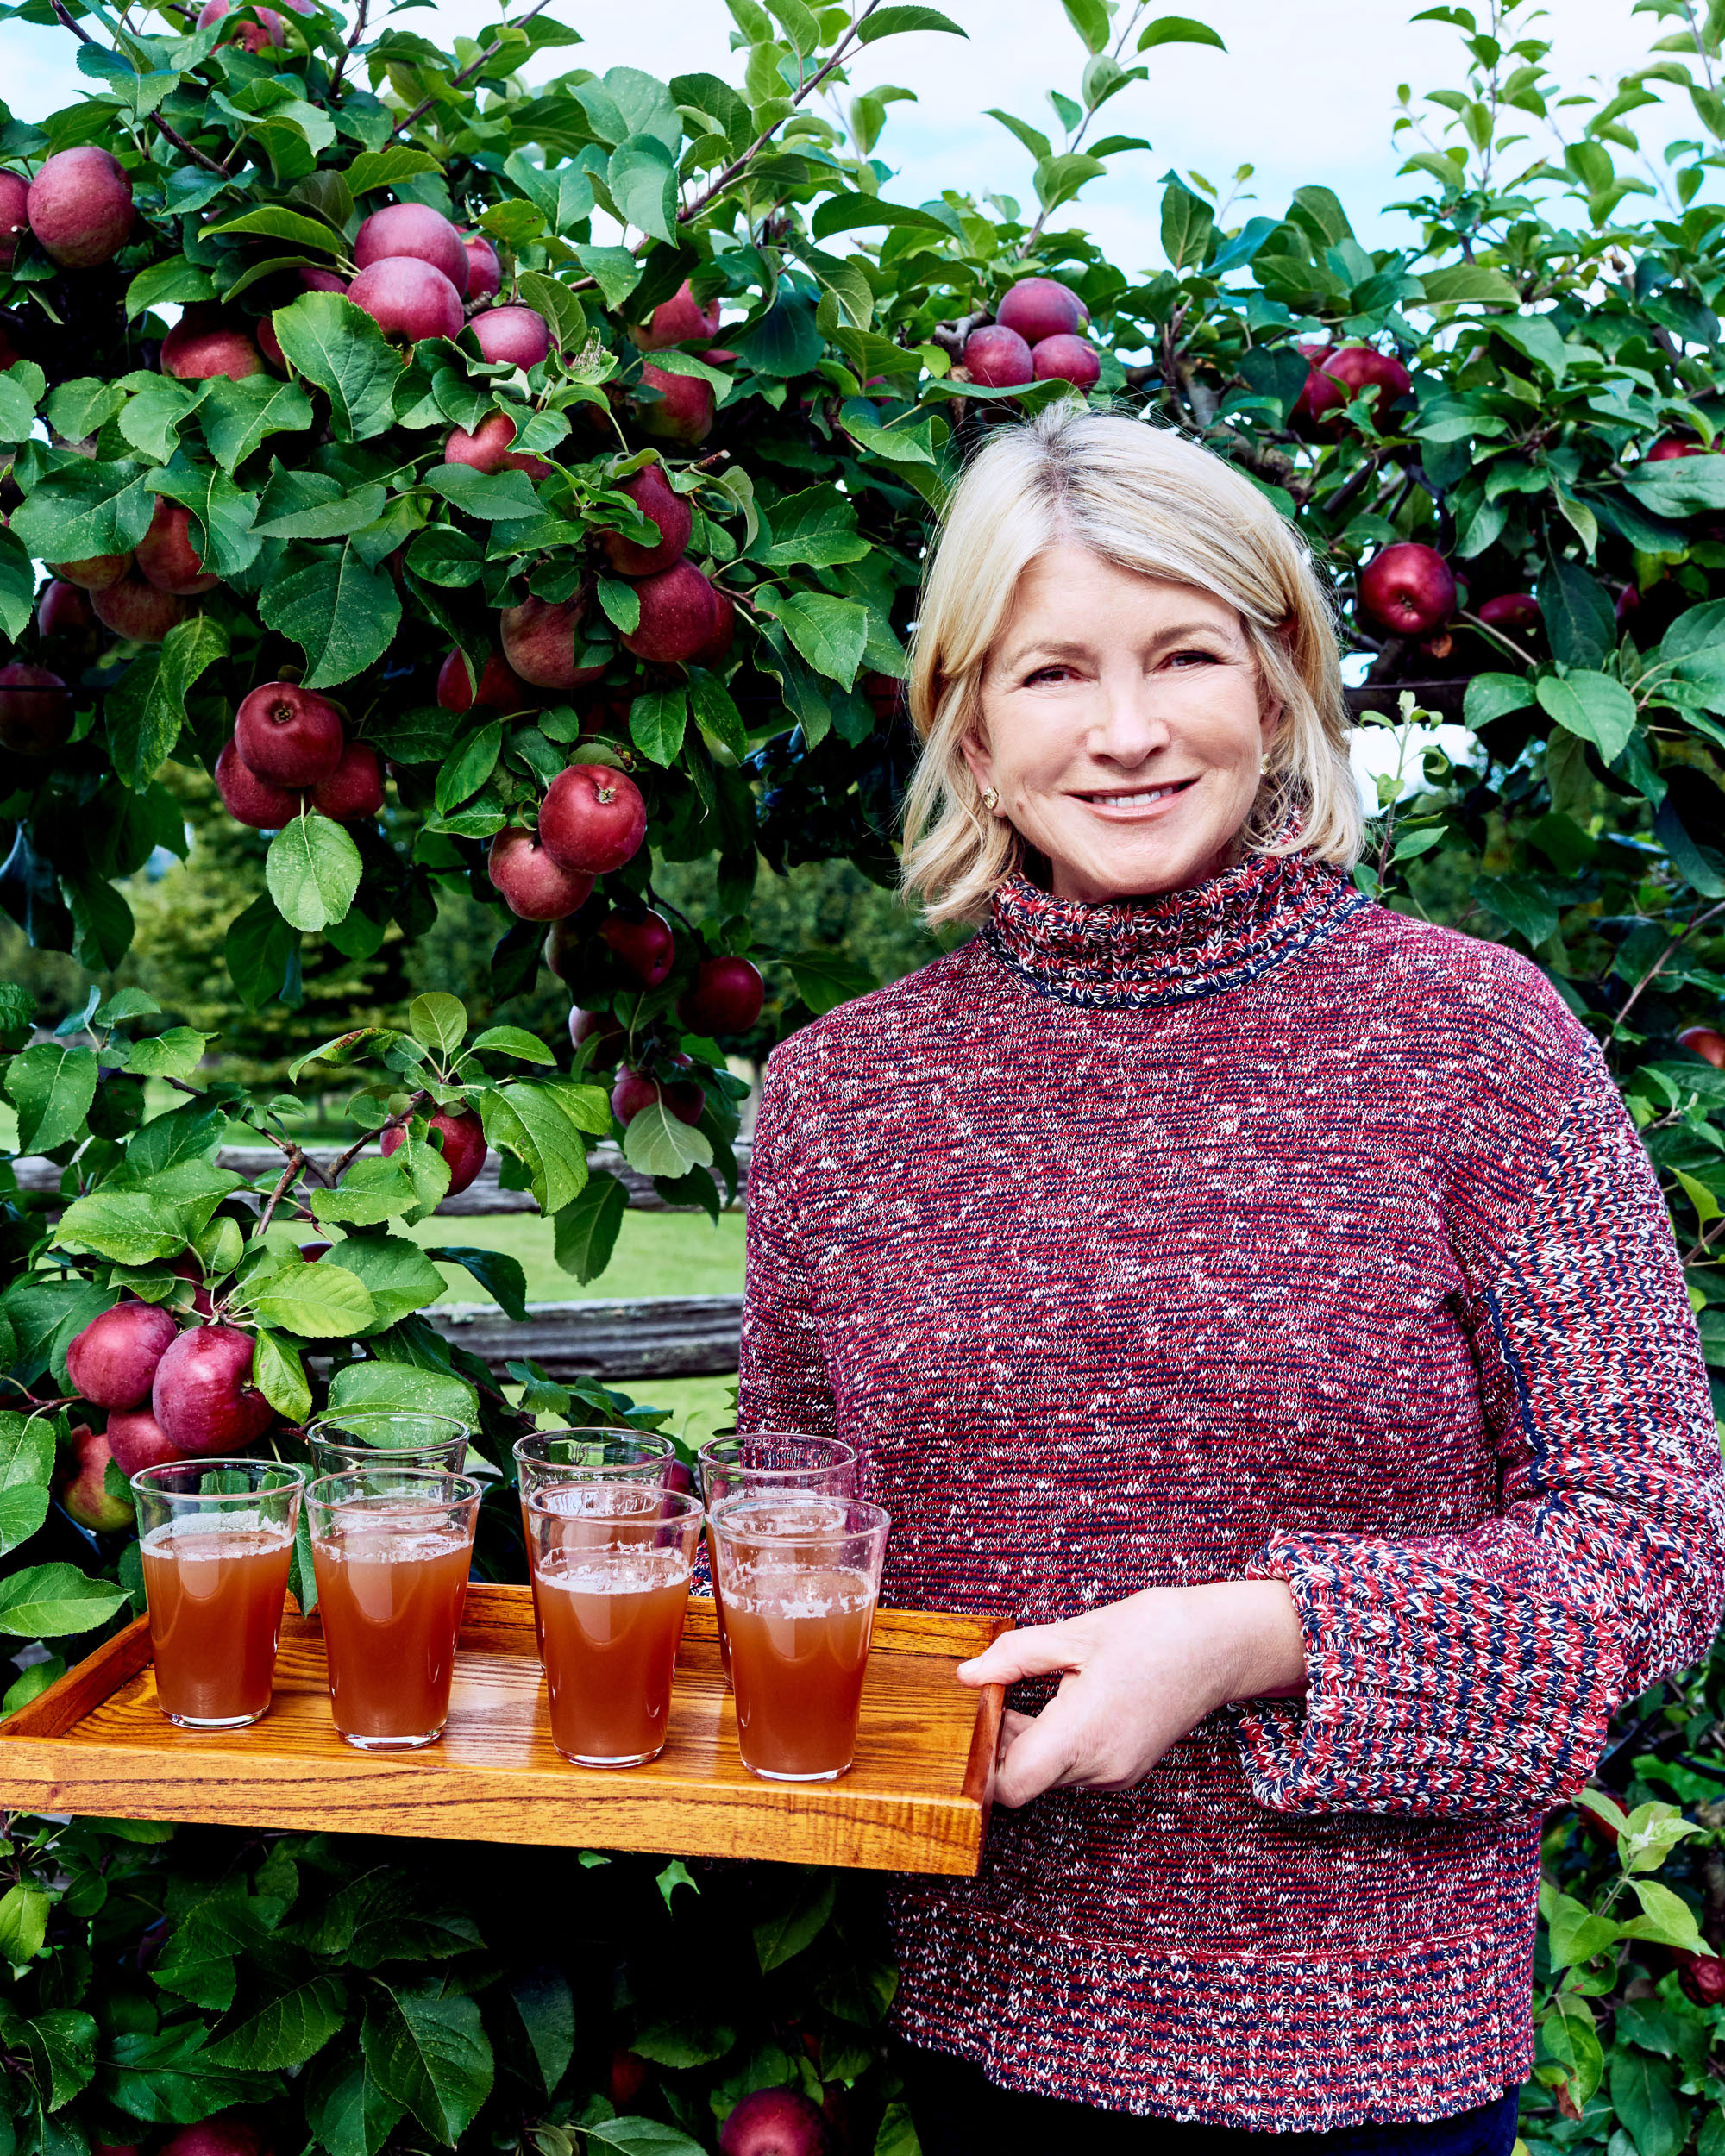 Martha's Favorite Fall Drink? Homemade Apple Cider